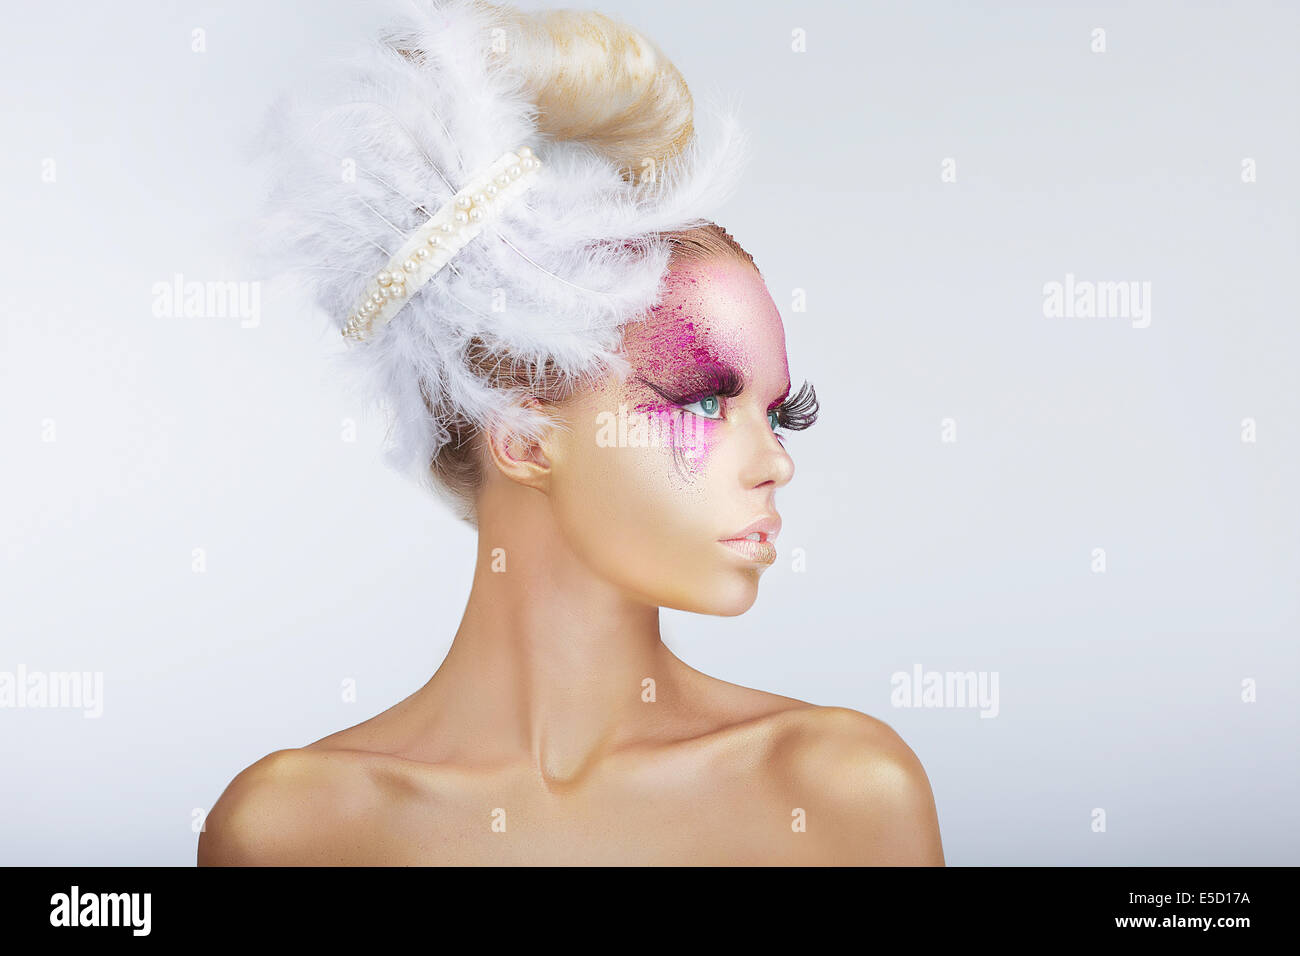 Creativity. Glamorous Fashion Model with Fancy Hair-do with Feathers - Stock Image